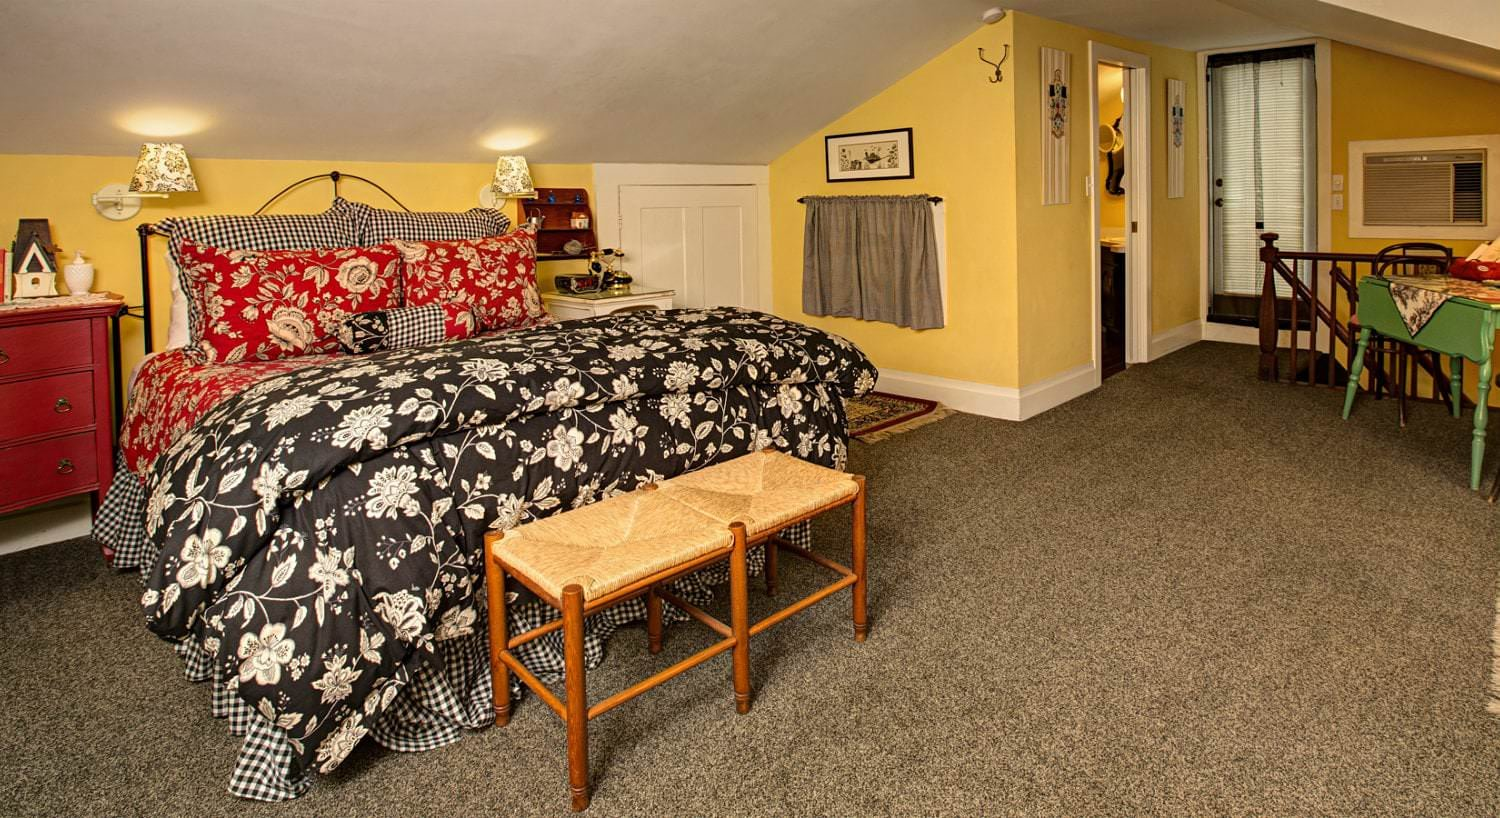 Spacious yellow room, vaulted ceilings, tan carpet, black, red and white covered bed, red nightstand, and wood table and chairs